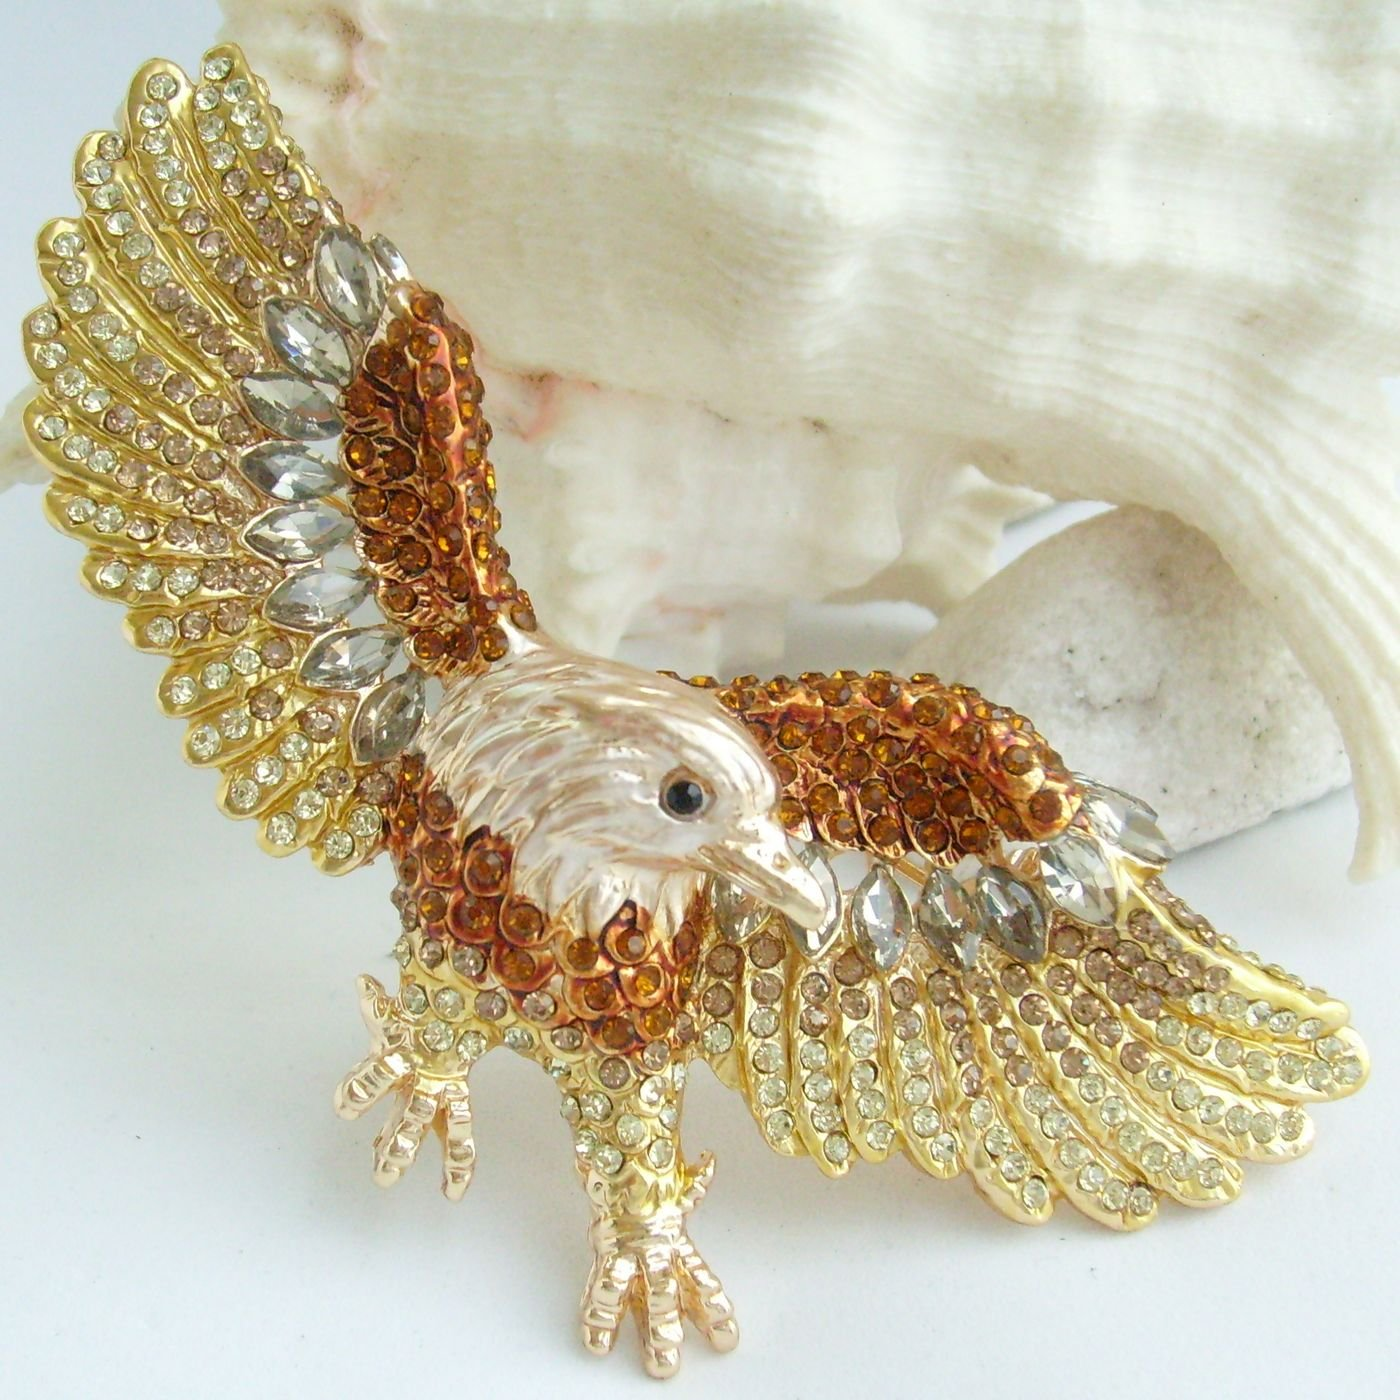 Sindary Unique 3.15'' Eagle Brooch Pin Rhinestone Crystal Pendant BZ4717 (Gold-Tone Brown) by Animal Brooch-Sindary Jewelry (Image #4)